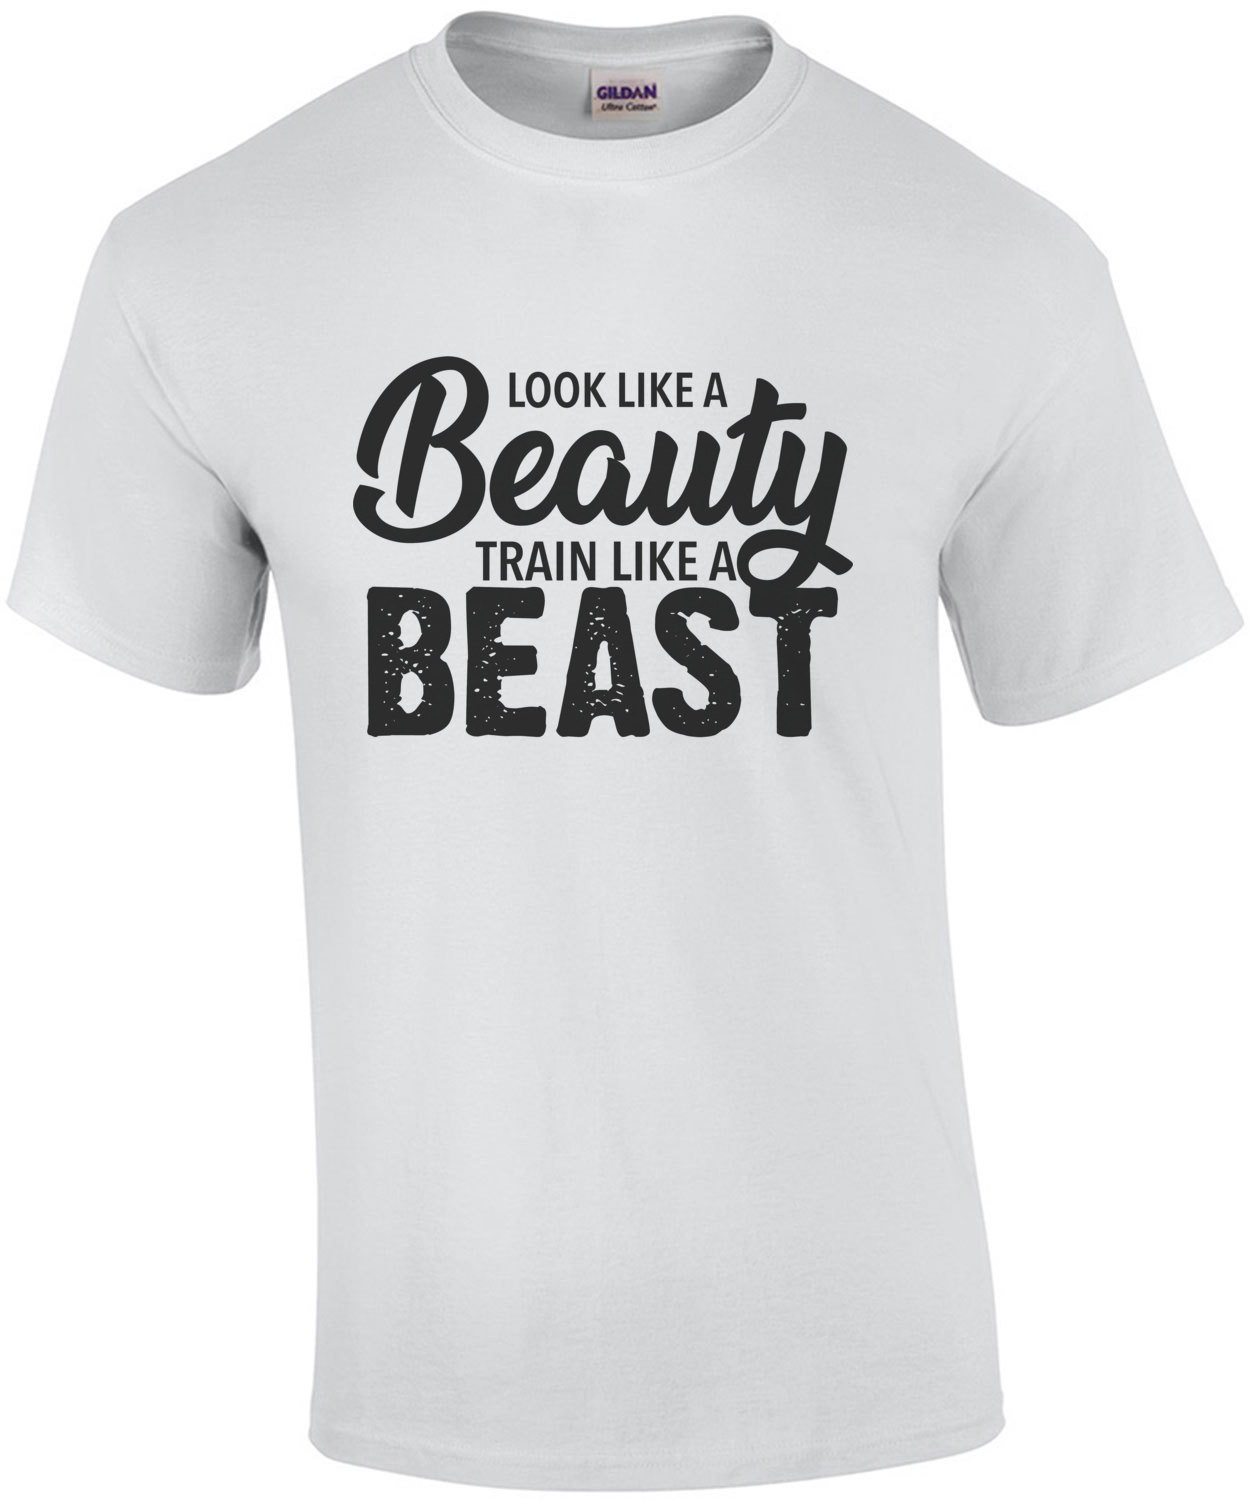 Look like a beauty train like a beast - work out t-shirt